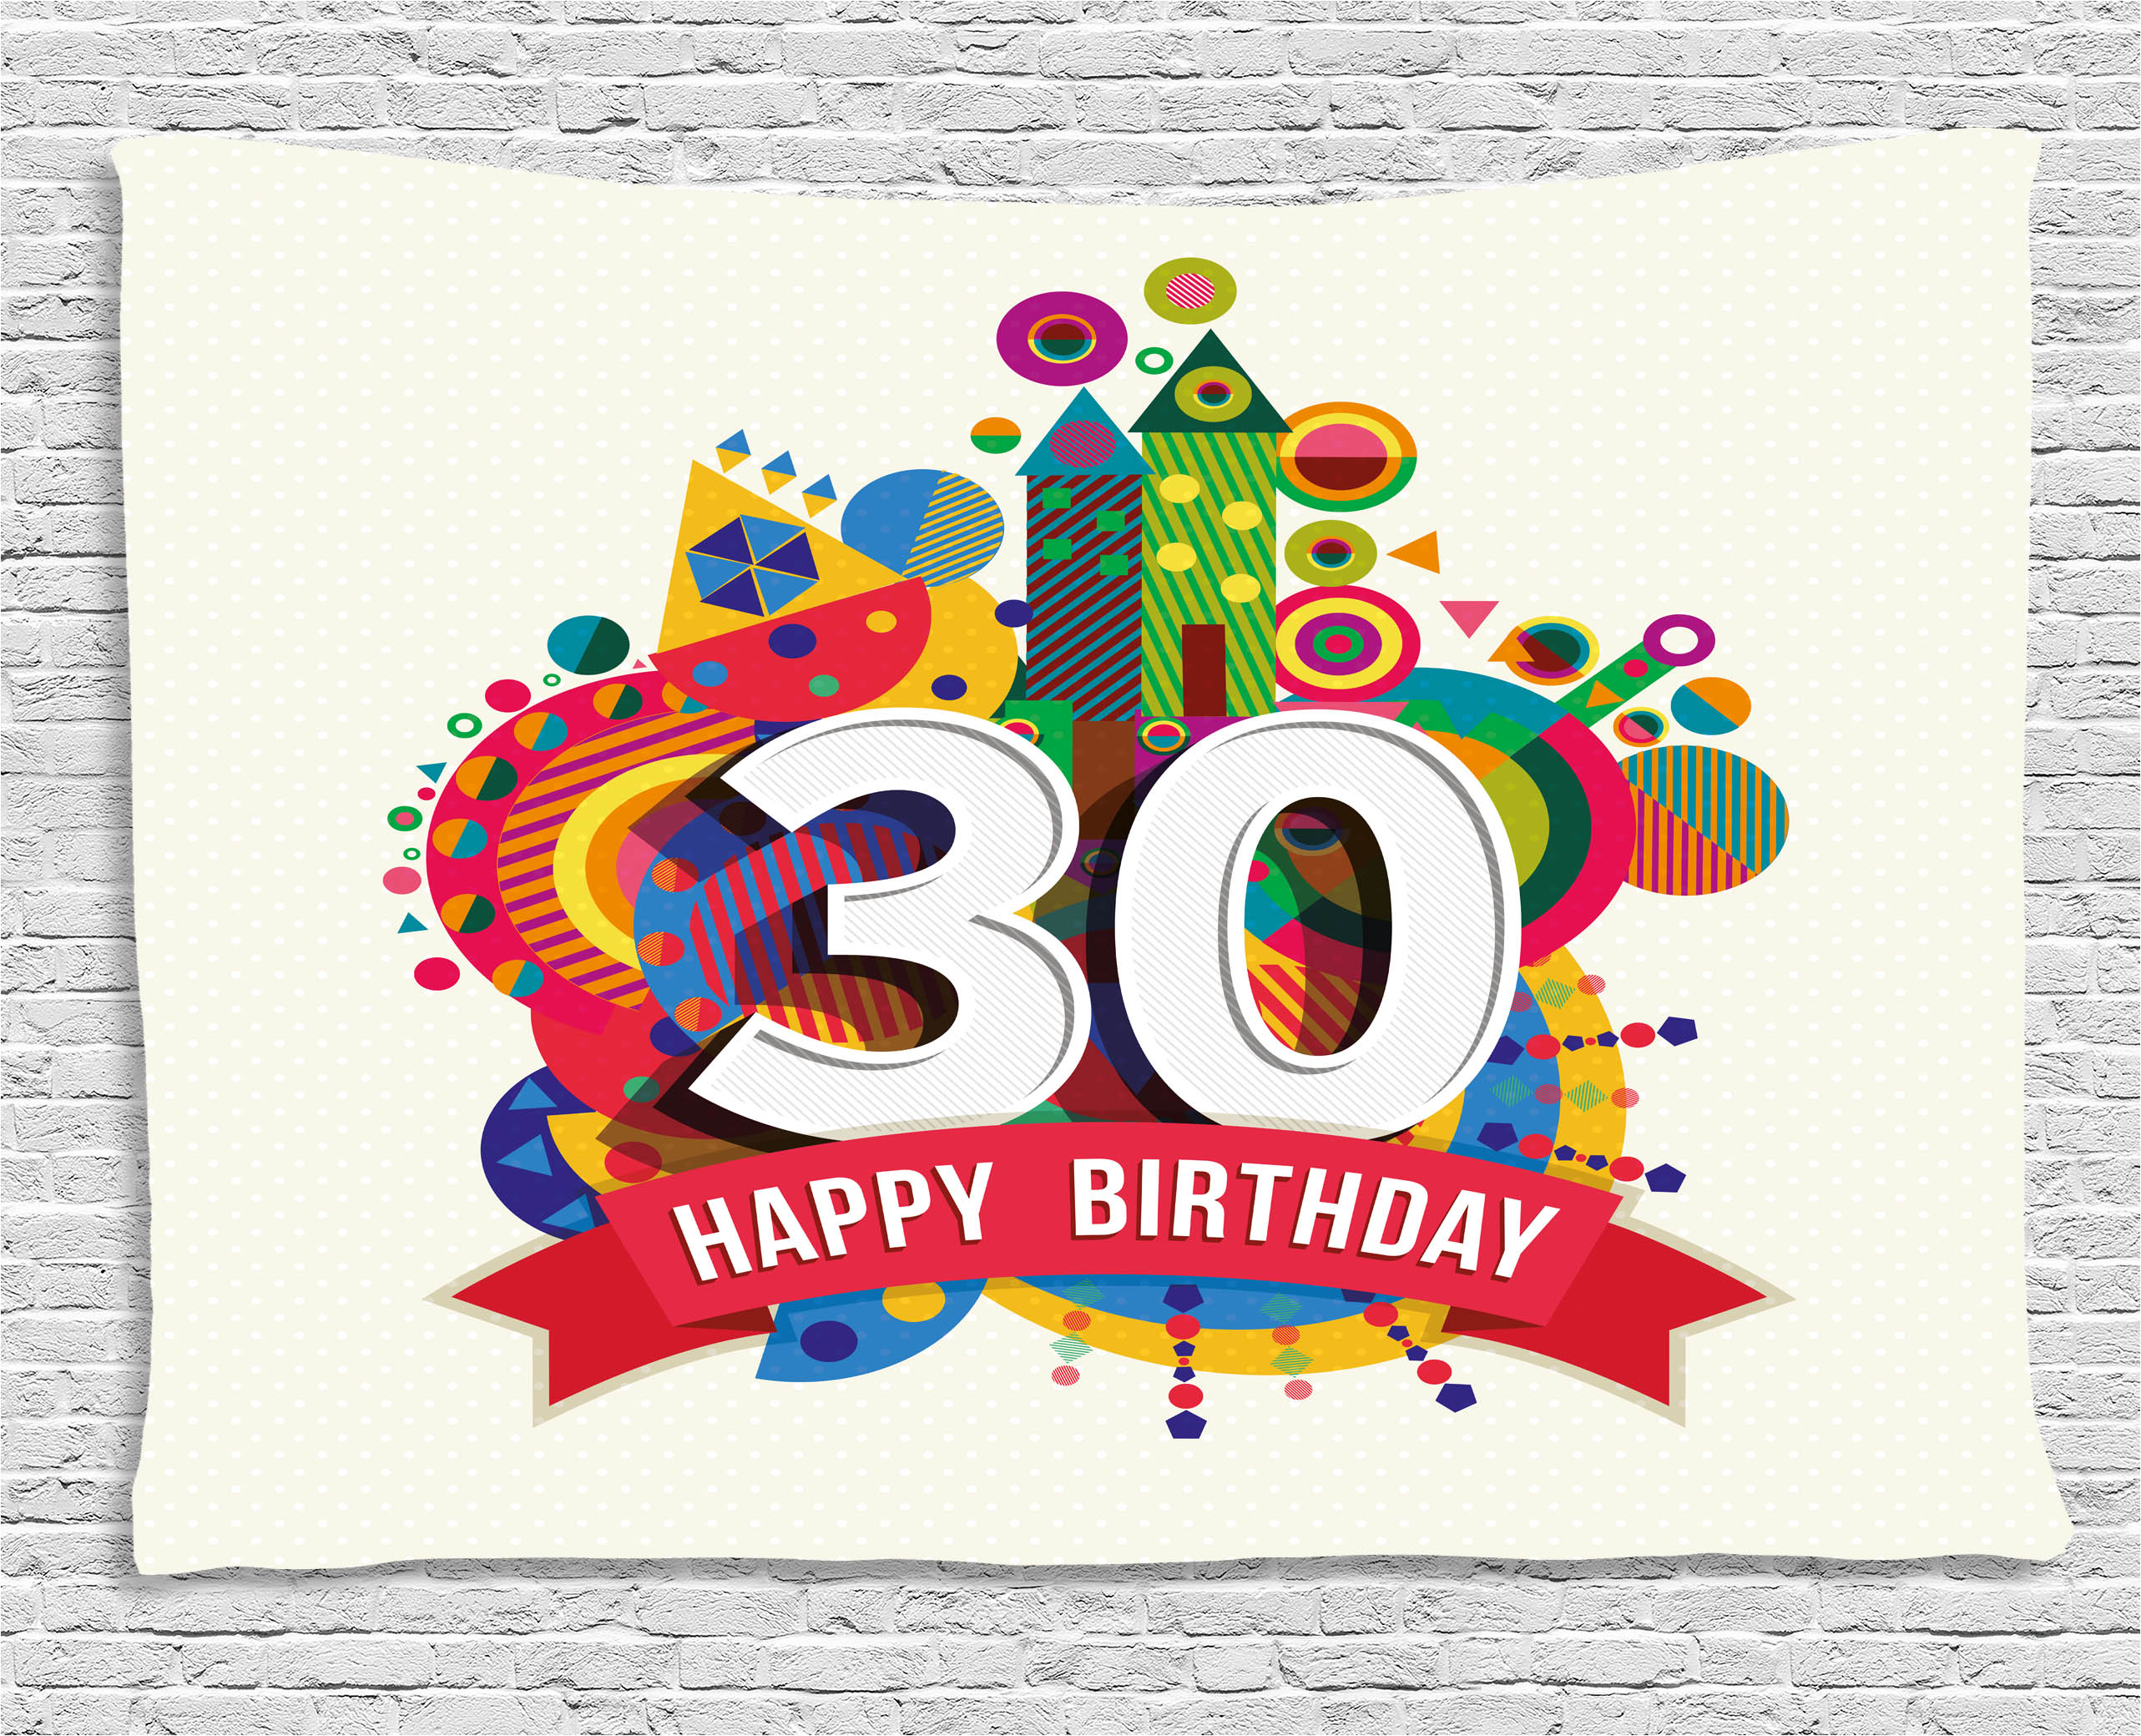 30th Birthday Decorations Tapestry Colorful Geometric Design Funky Vibrant Shapes Cute Cheerful Wall Hanging For Bedroom Living Room Dorm Decor